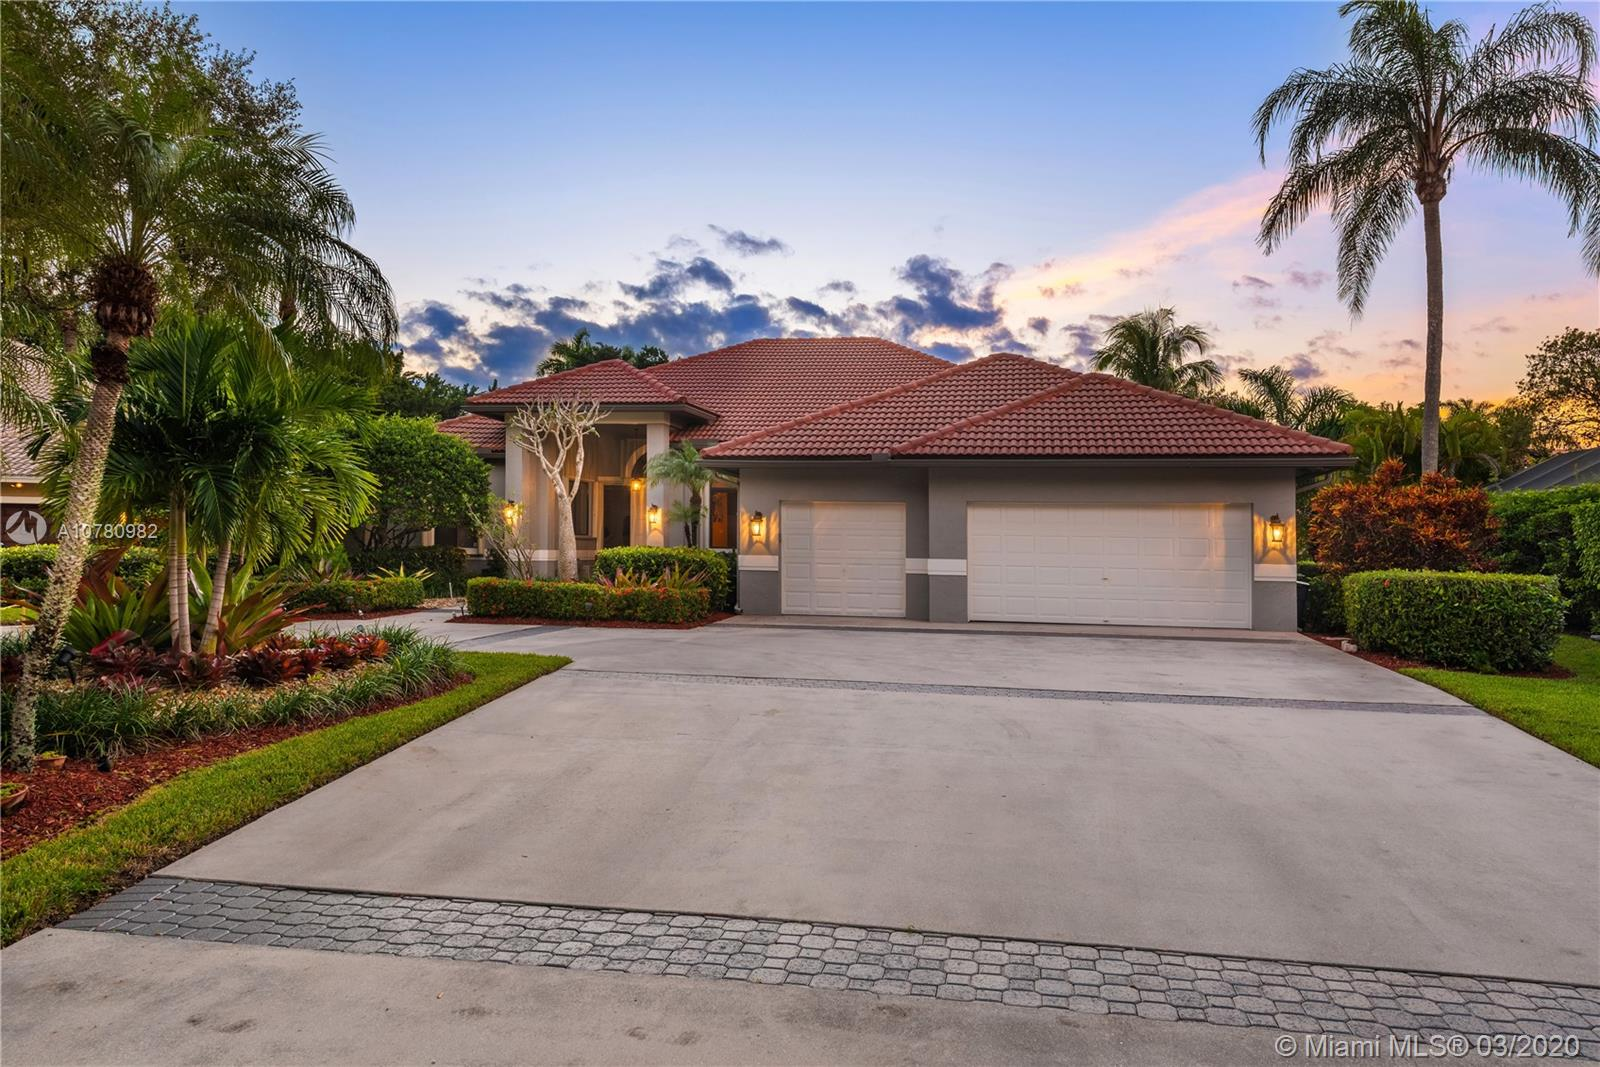 Breathtaking and awe-inspiring, this exquisite estate home in Tequesta never ceases to fascinate! Located on an oversized 19,400+ SF lot in a cul-de-sac on Tequesta's estate homes, this fabulous pool home features an oversized driveway and 3 car garage and has been meticulously and diligently renovated and includes high volume ceilings and open floor plan. Improvements include 2012 roof replacement, 2015 A/C units, new flooring, custom chef's kitchen with custom cabinetry new appliances, bathrooms, electrical, fencing, hurricane protection featuring a combination of impact windows and shutters throughout and much more. Conveniently situated in one of Weston's most premier gated communities, easy access to supermarkets, shopping, dining, schools, highways. Call us today to schedule a visit!